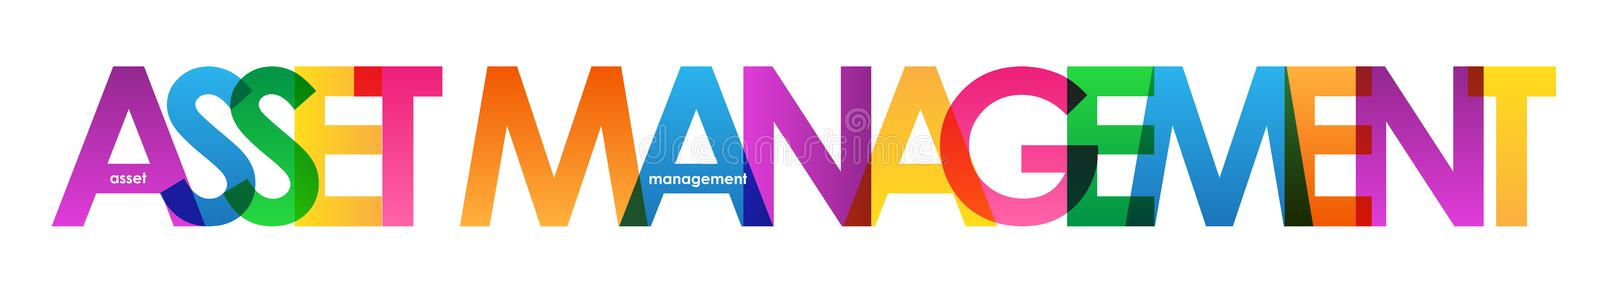 ASSET MANAGEMENT colorful overlapping letters banner. ASSET MANAGEMENT overlapping semi-transparent letters word concept banner. Rainbow palette. Vector stock illustration